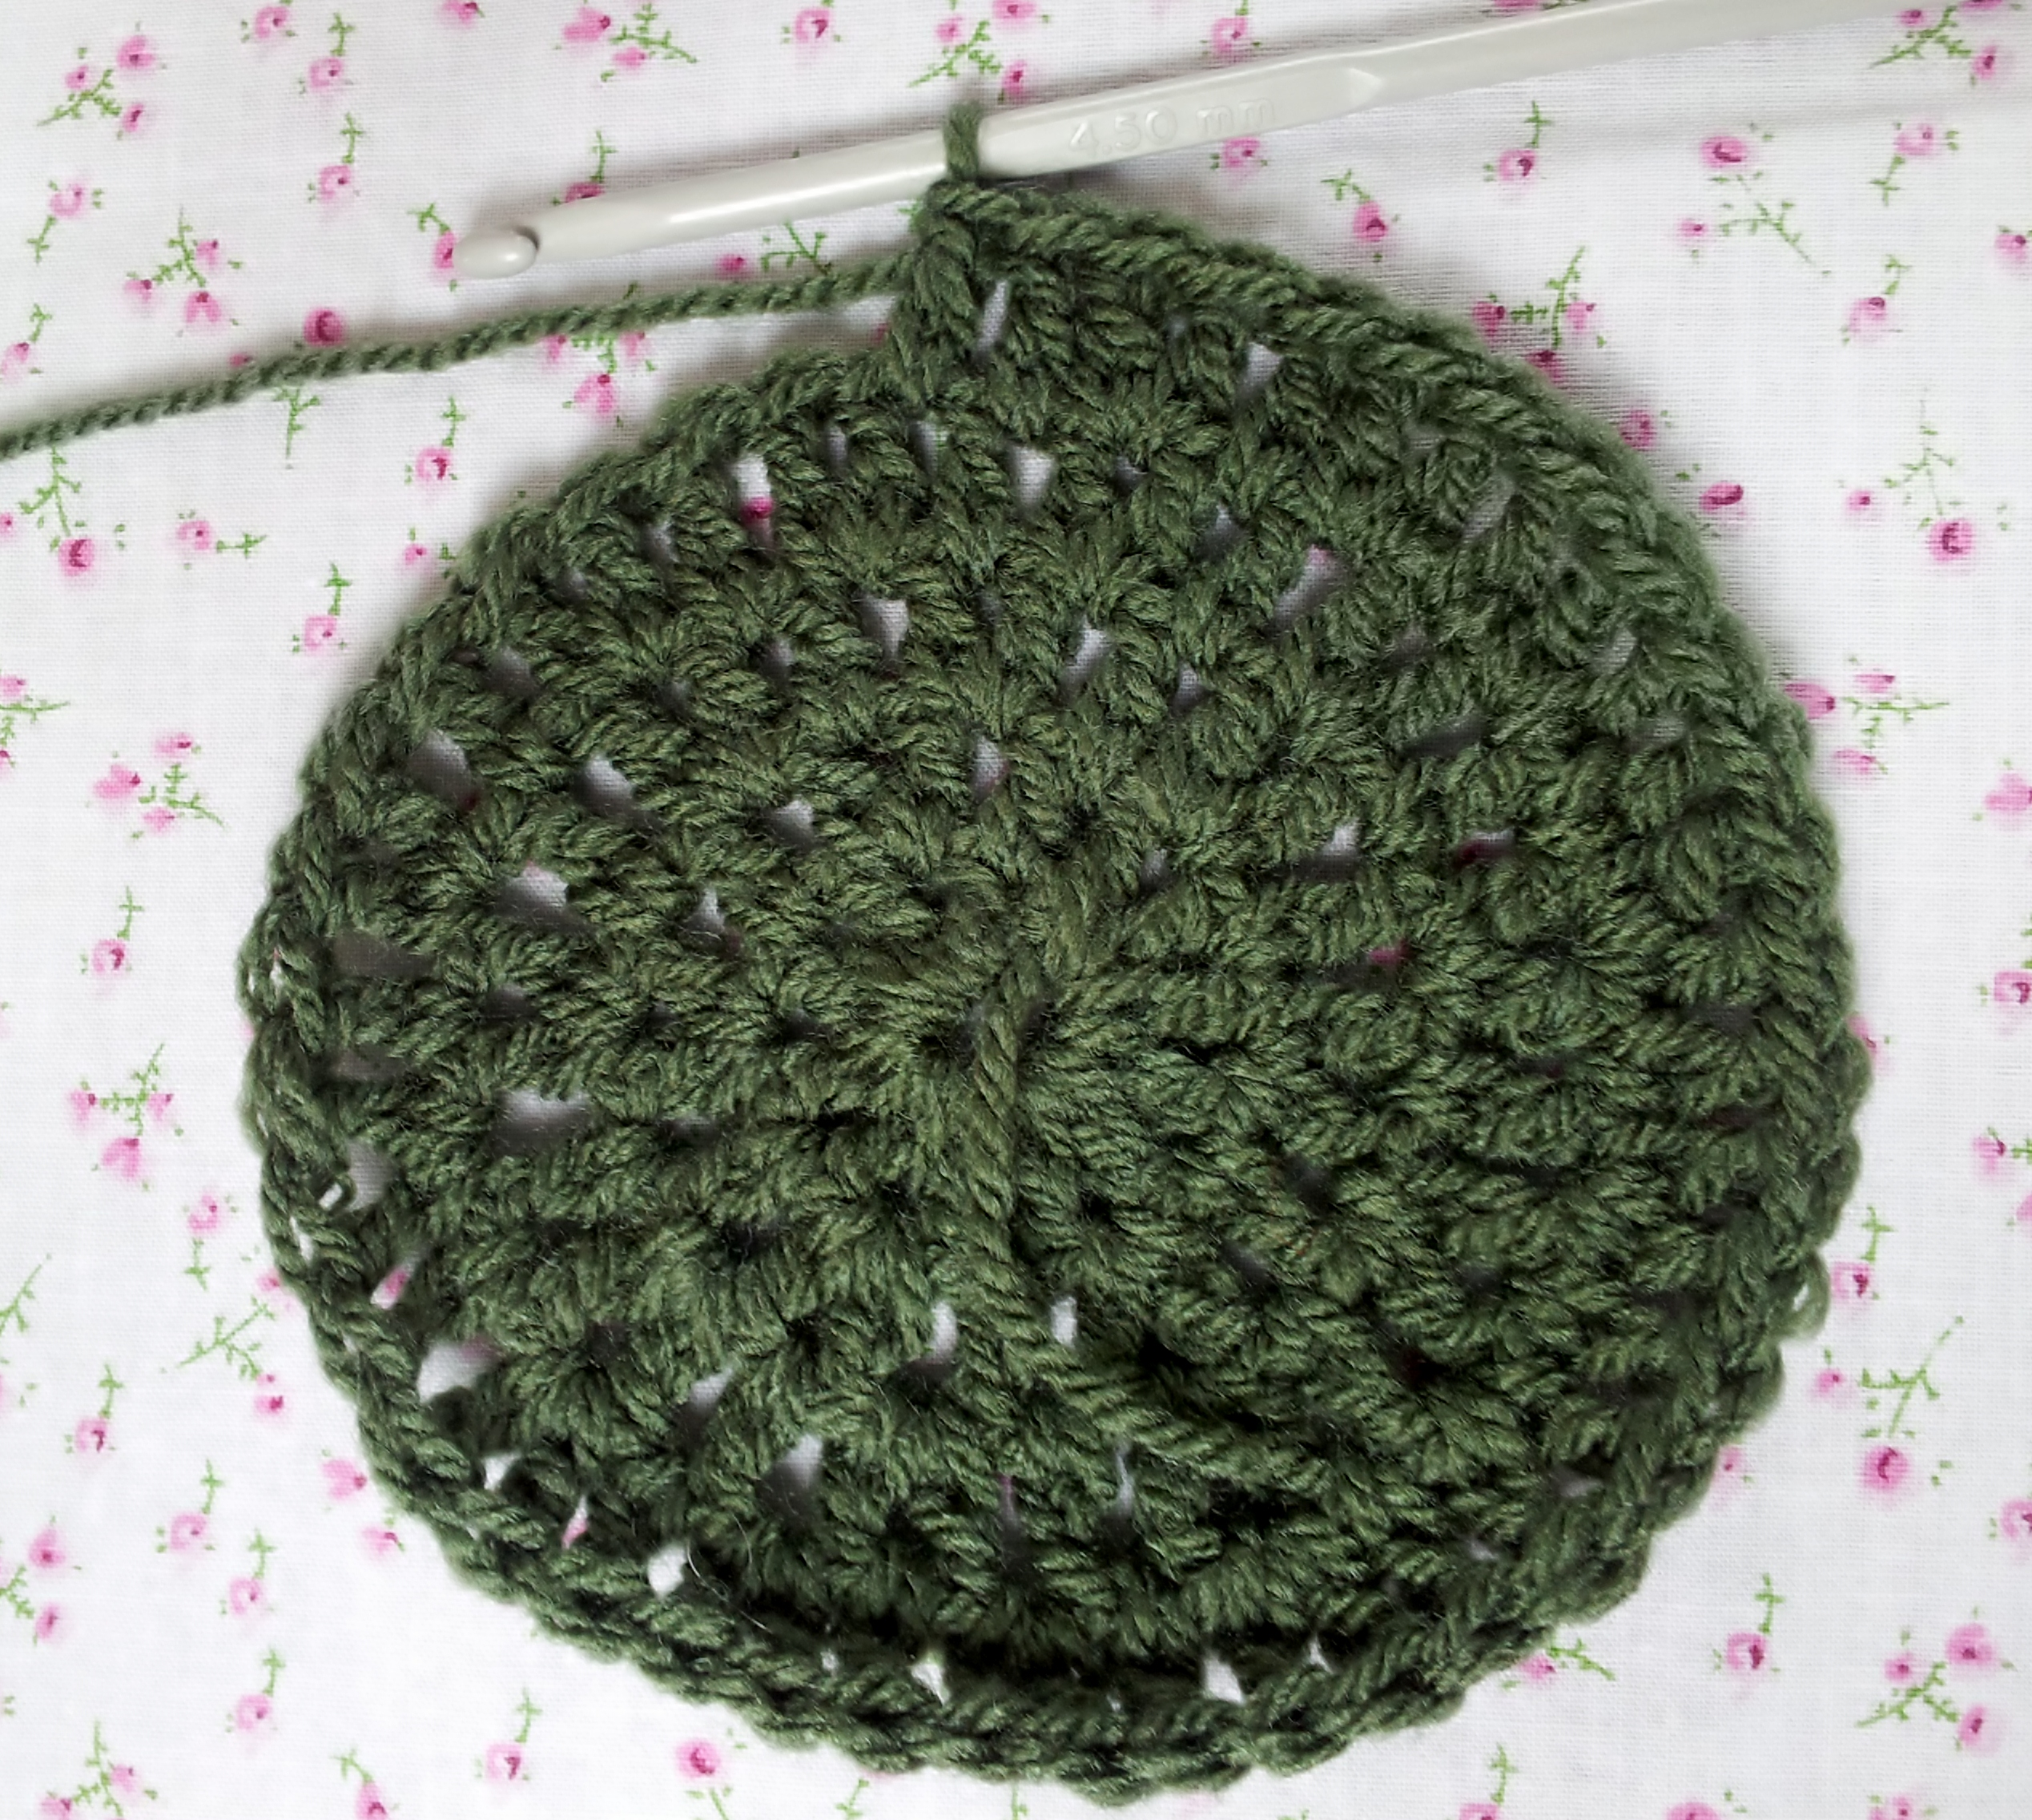 Crochet hat round 4 2 to 1